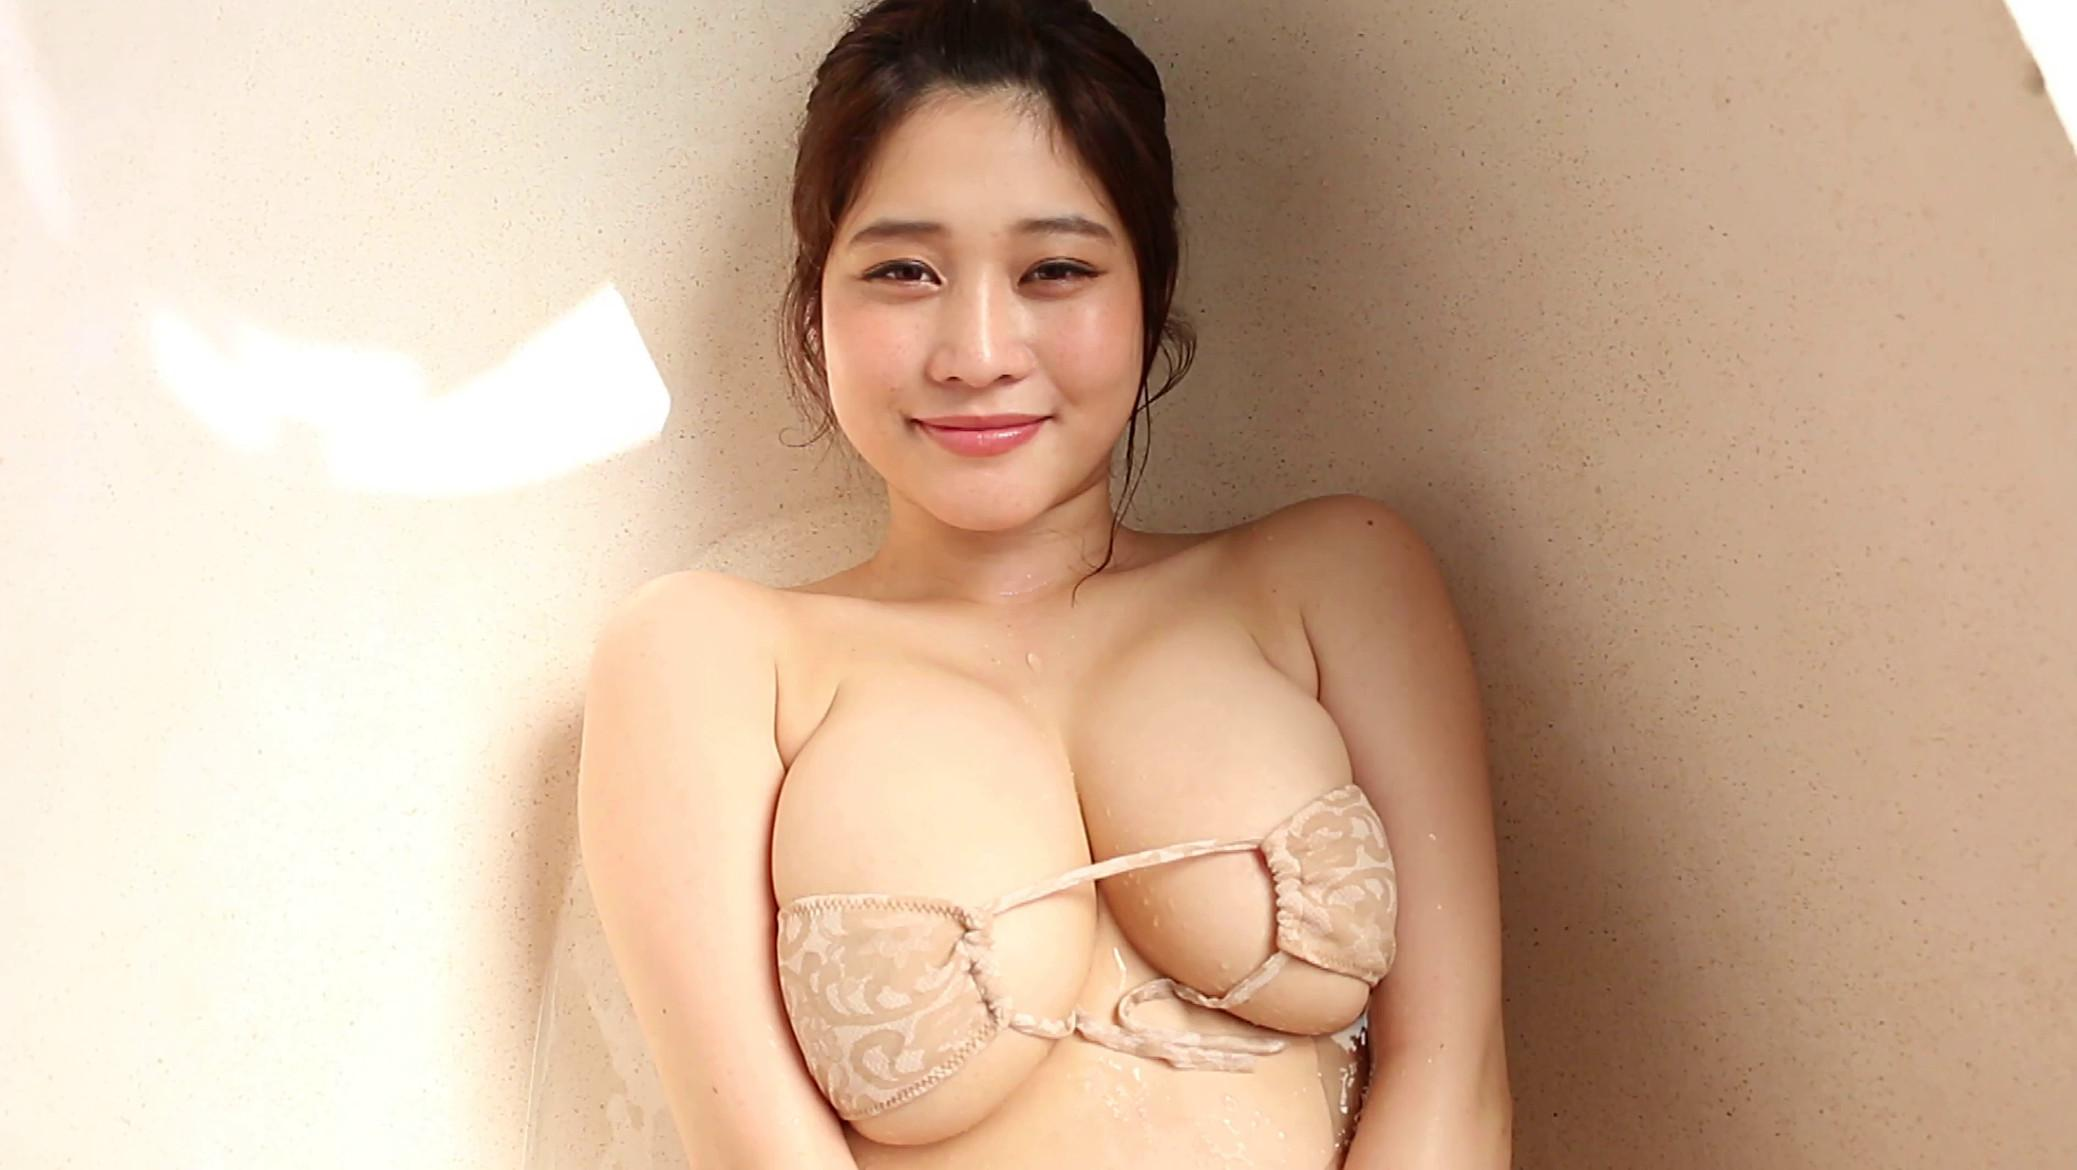 Tkahashi rin's huge cleavage pics